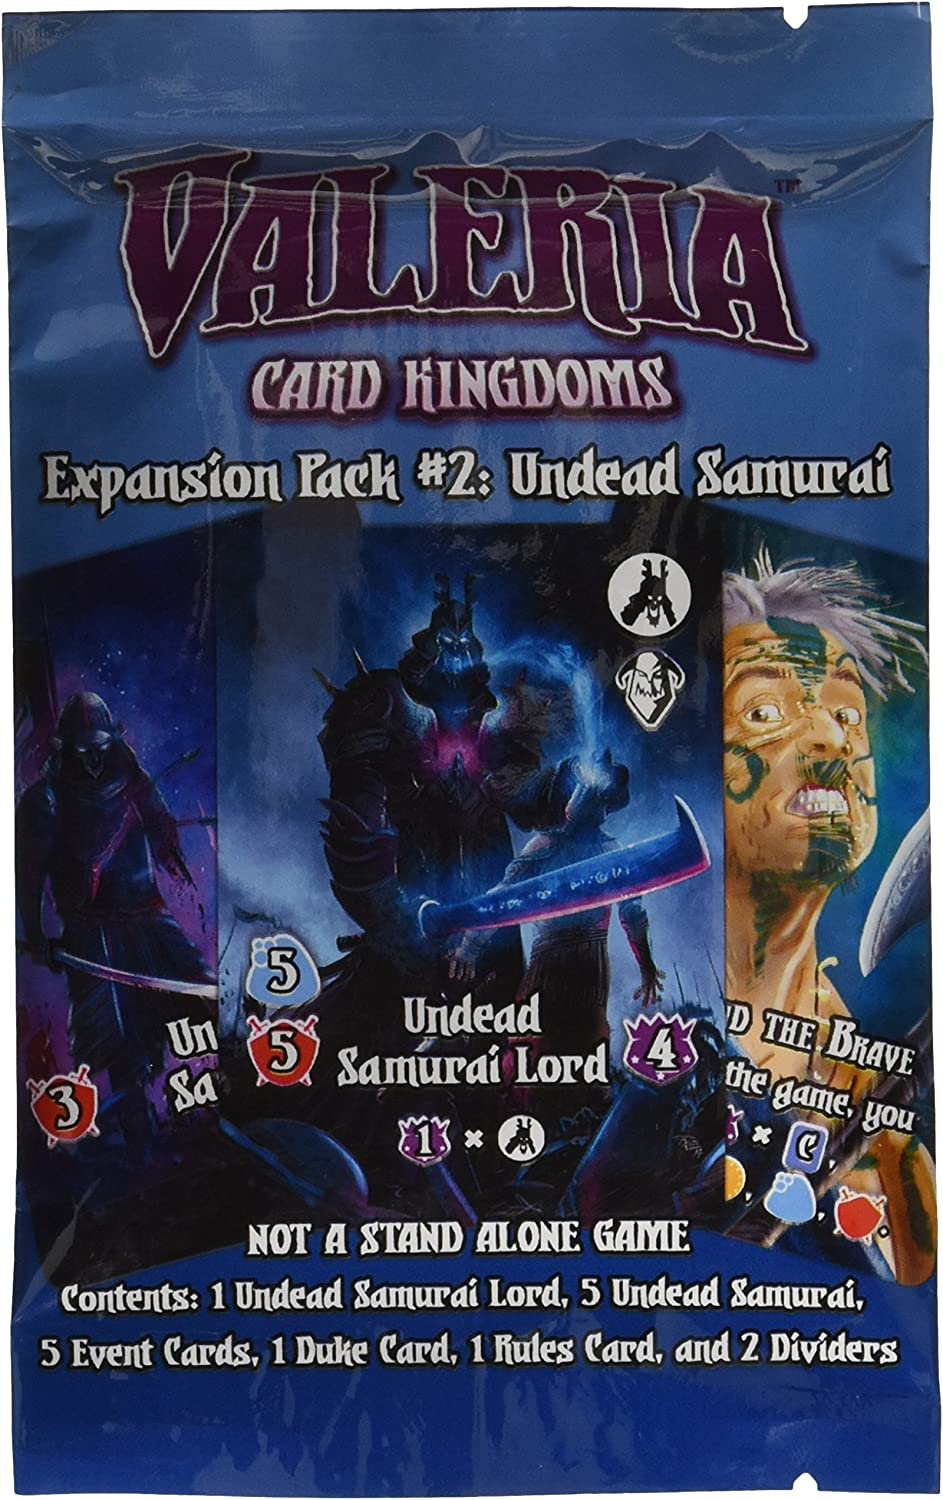 Daily Magic Valeria: Card Kingdoms - Expansion Pack #2: Undead Samurai by: Amazon.es: Juguetes y juegos